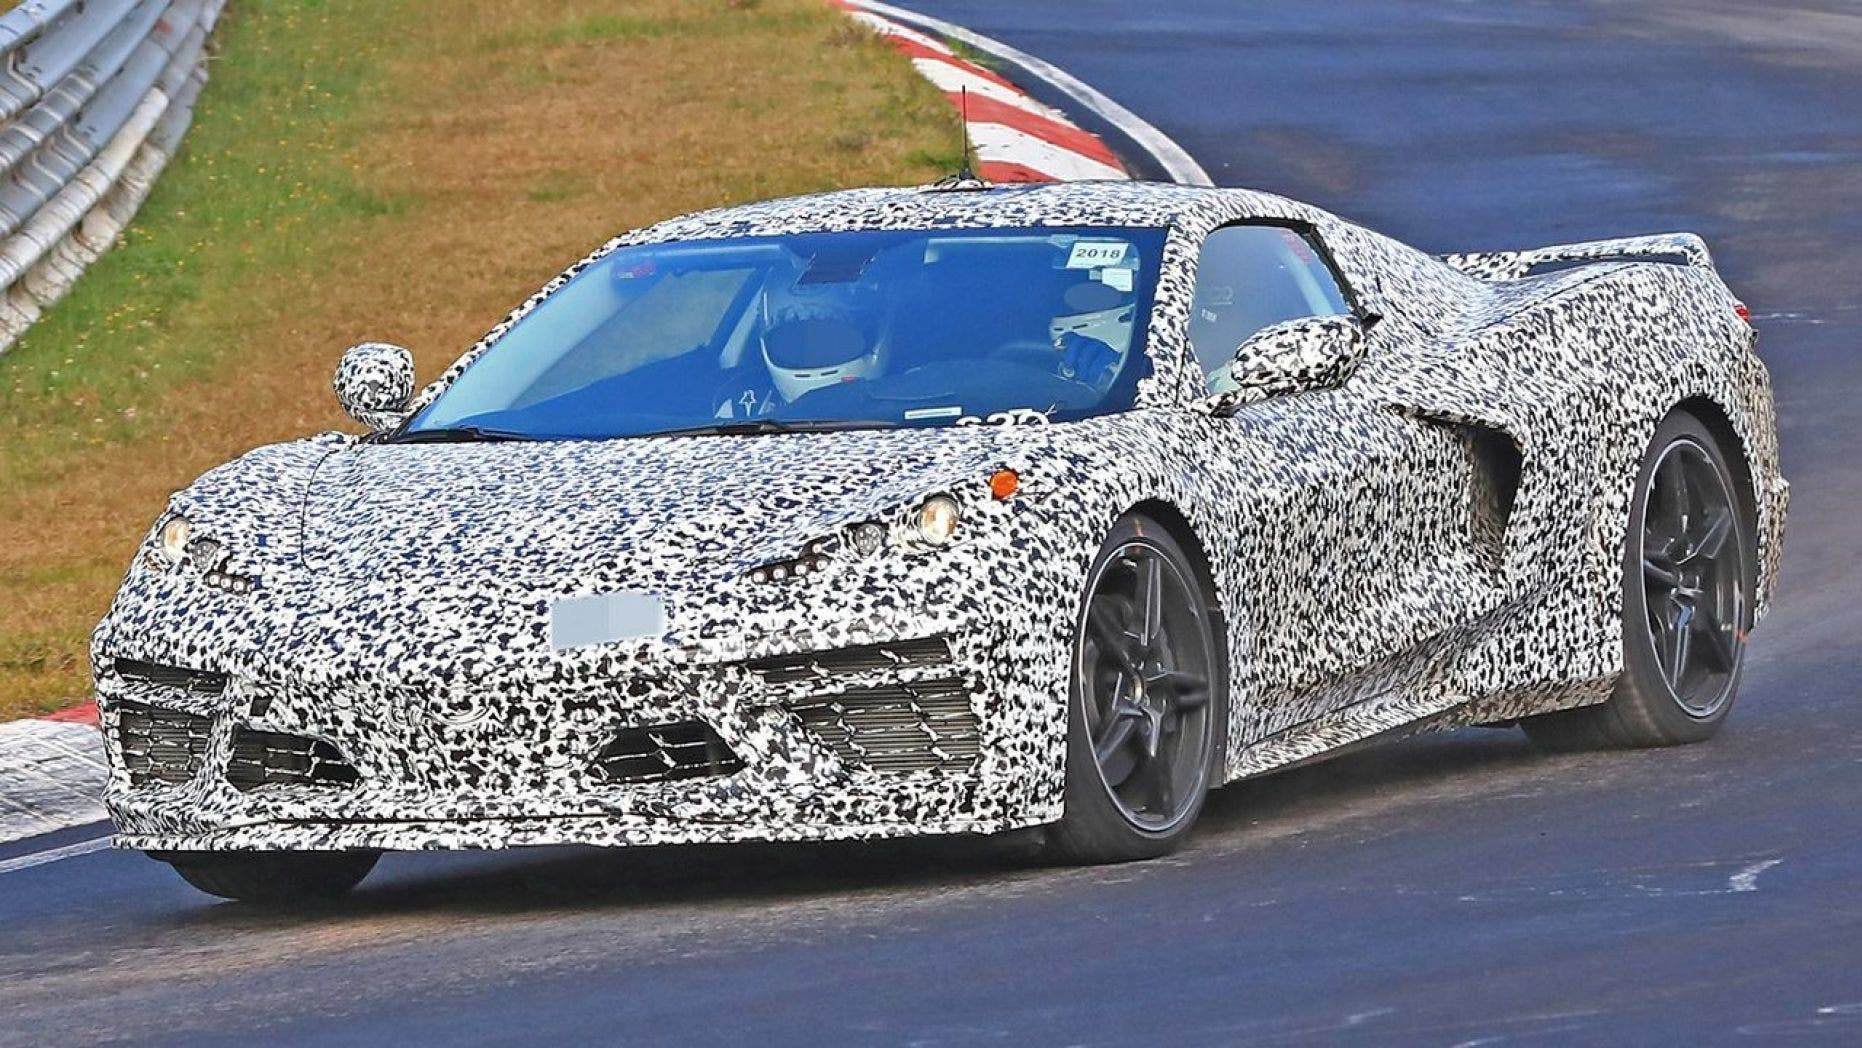 A mid-engined GM car has been spotted being tested on public roads and racetracks.